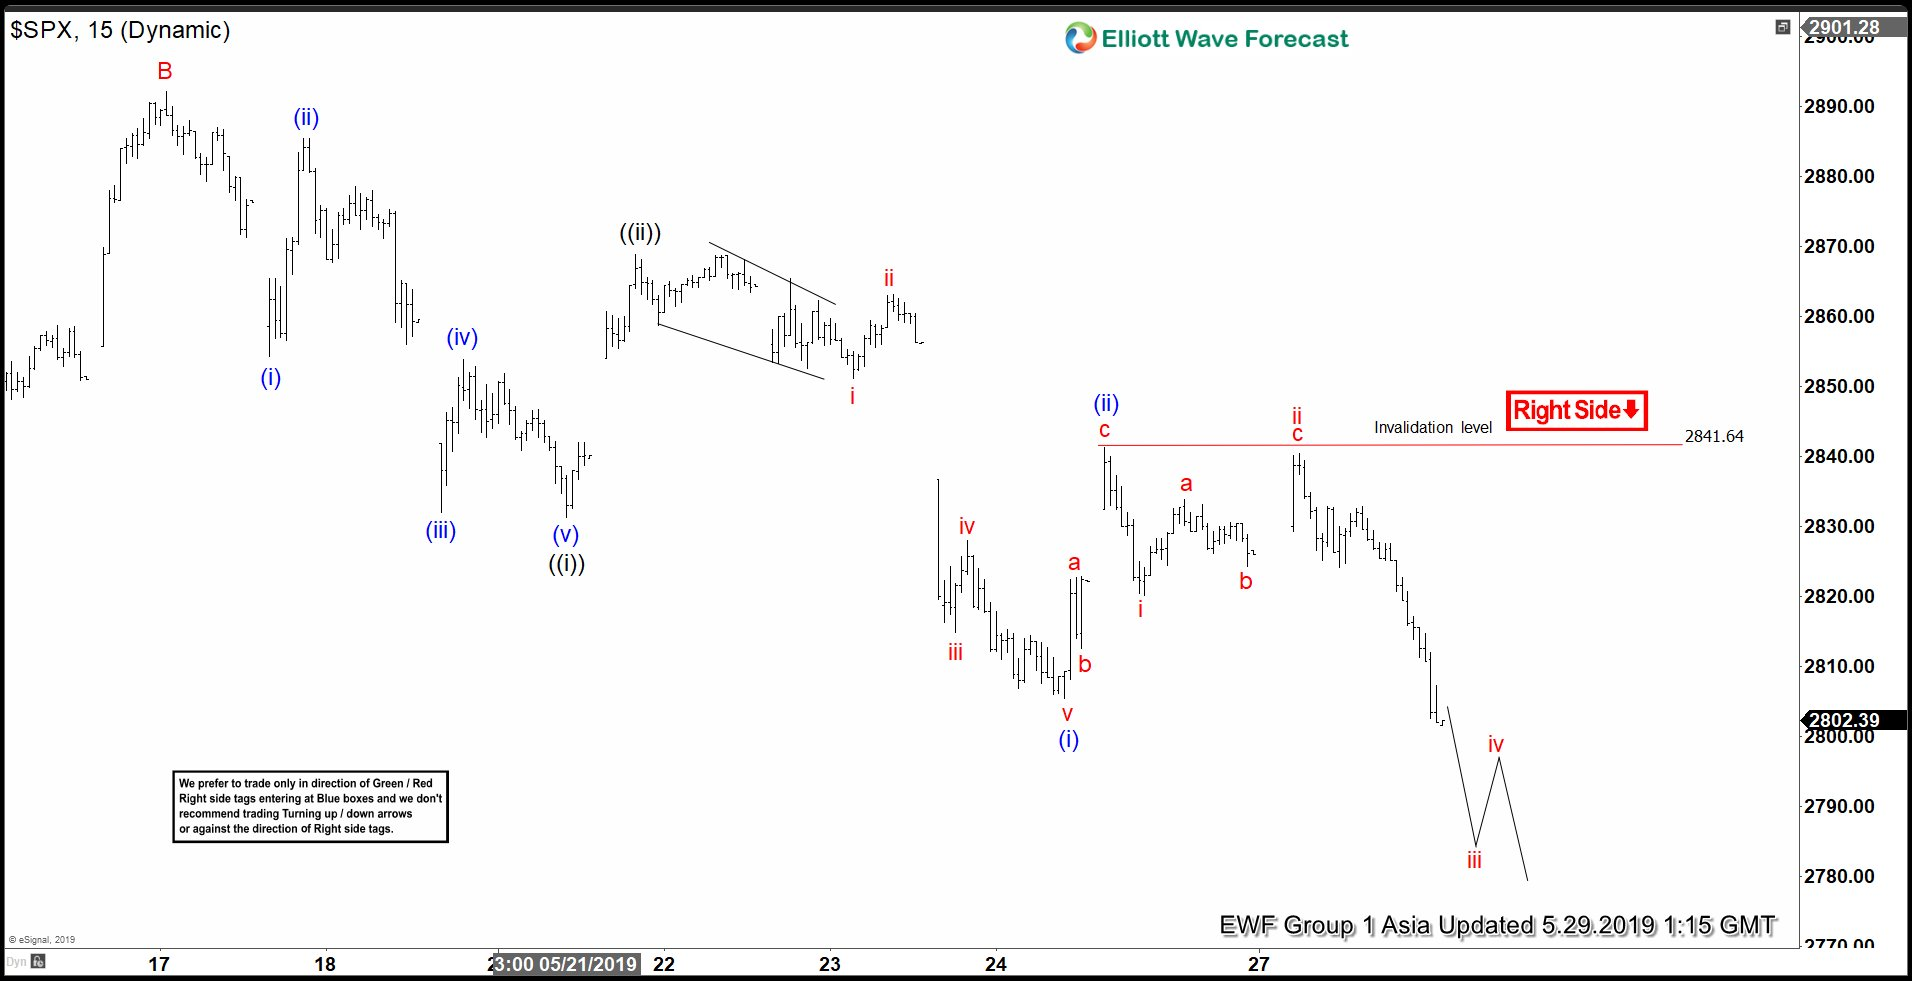 Elliott Wave View: S&P 500 (SPX) Has Resumed Lower